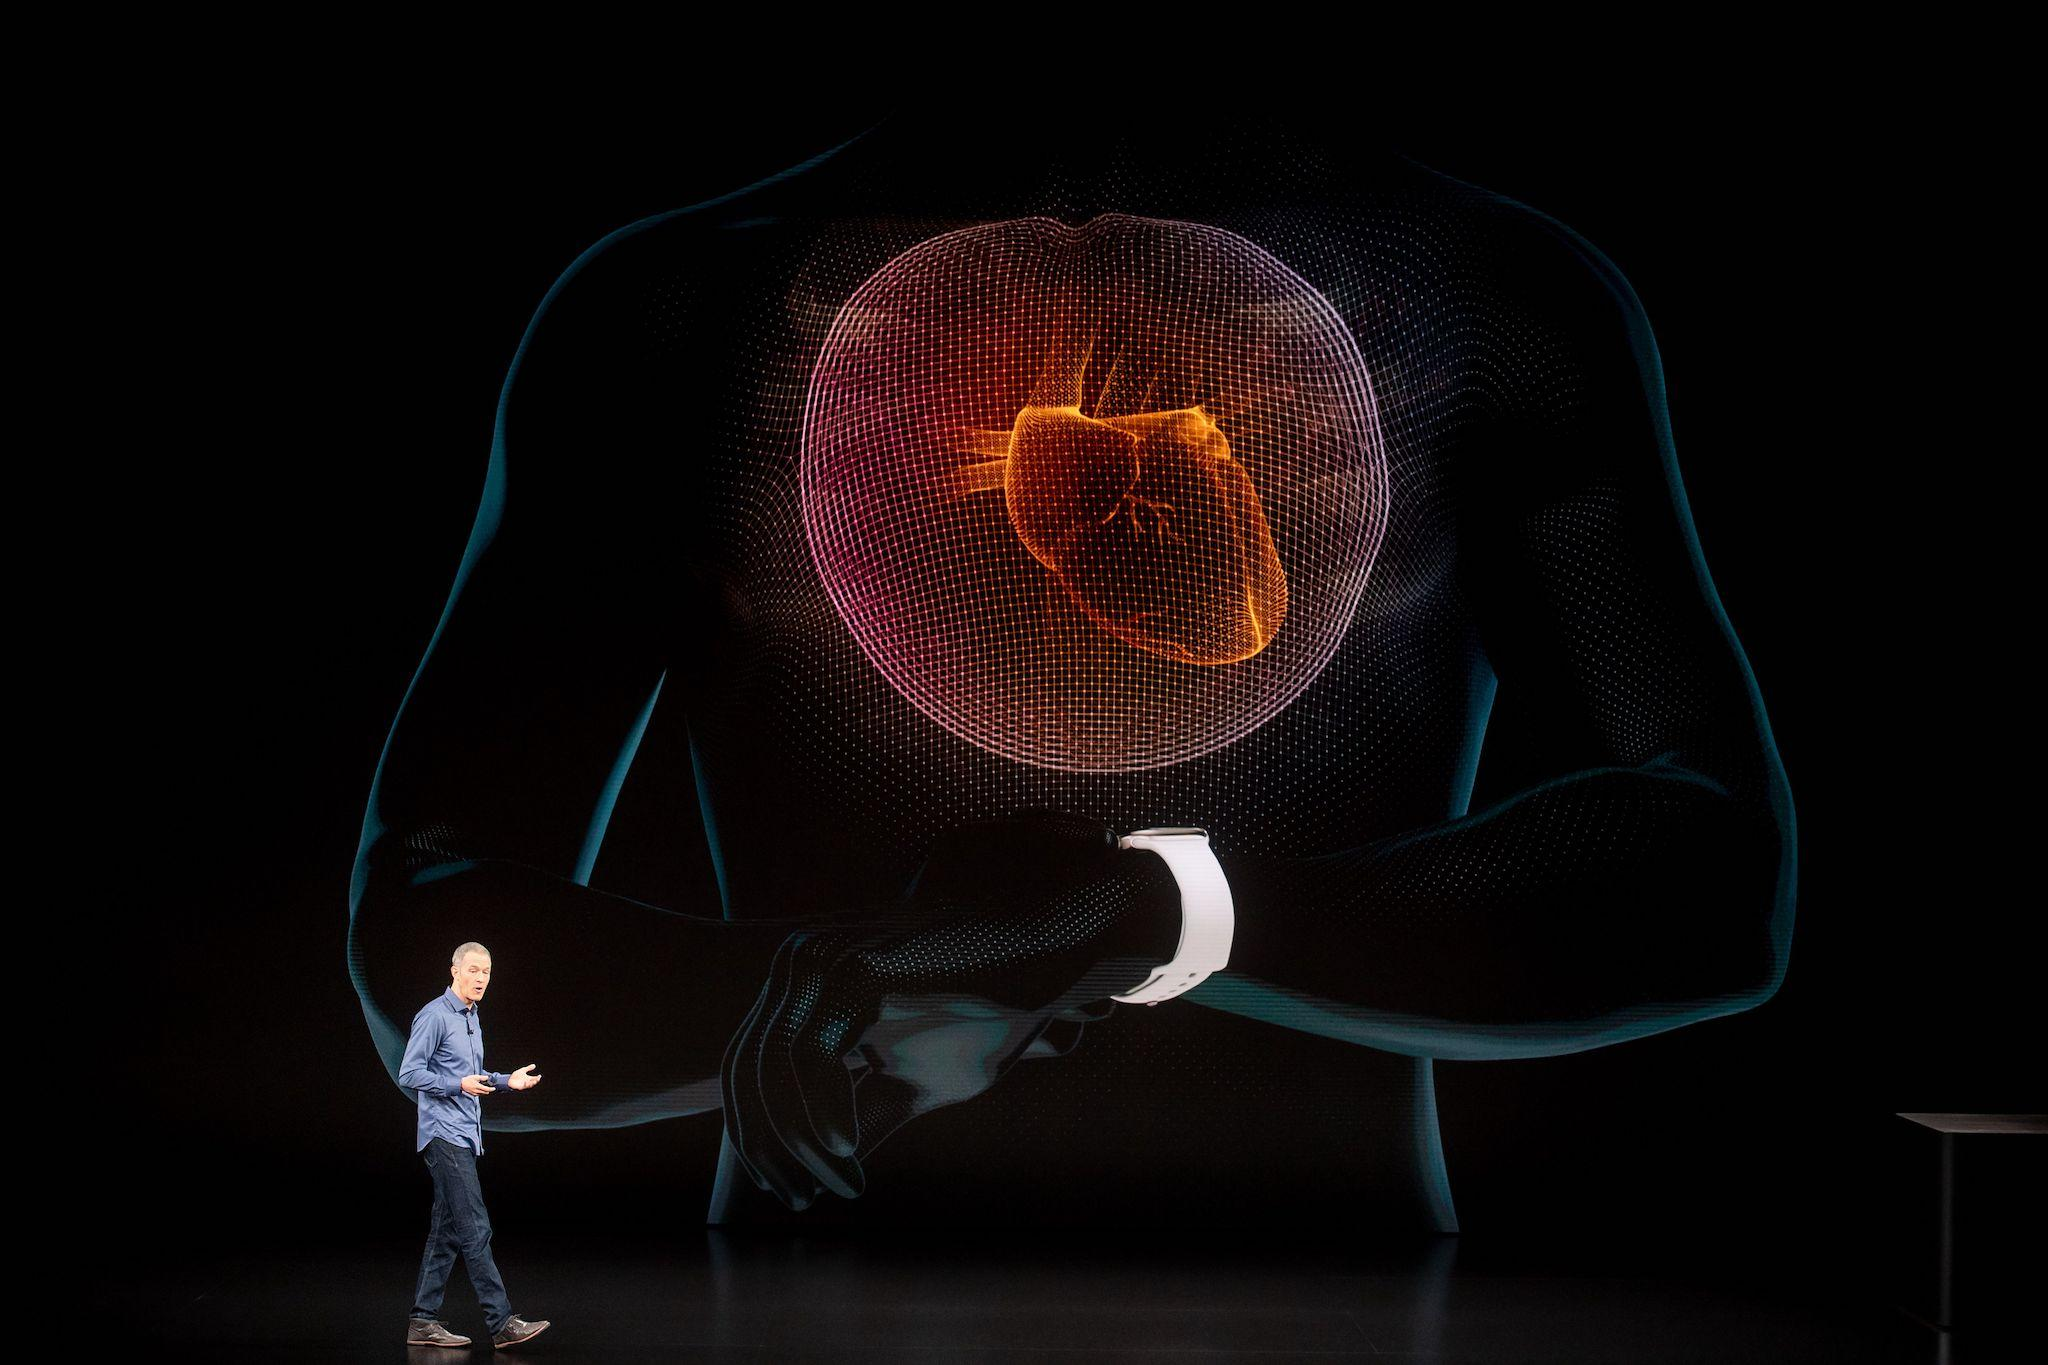 How the heart became the centre of the Apple Watch